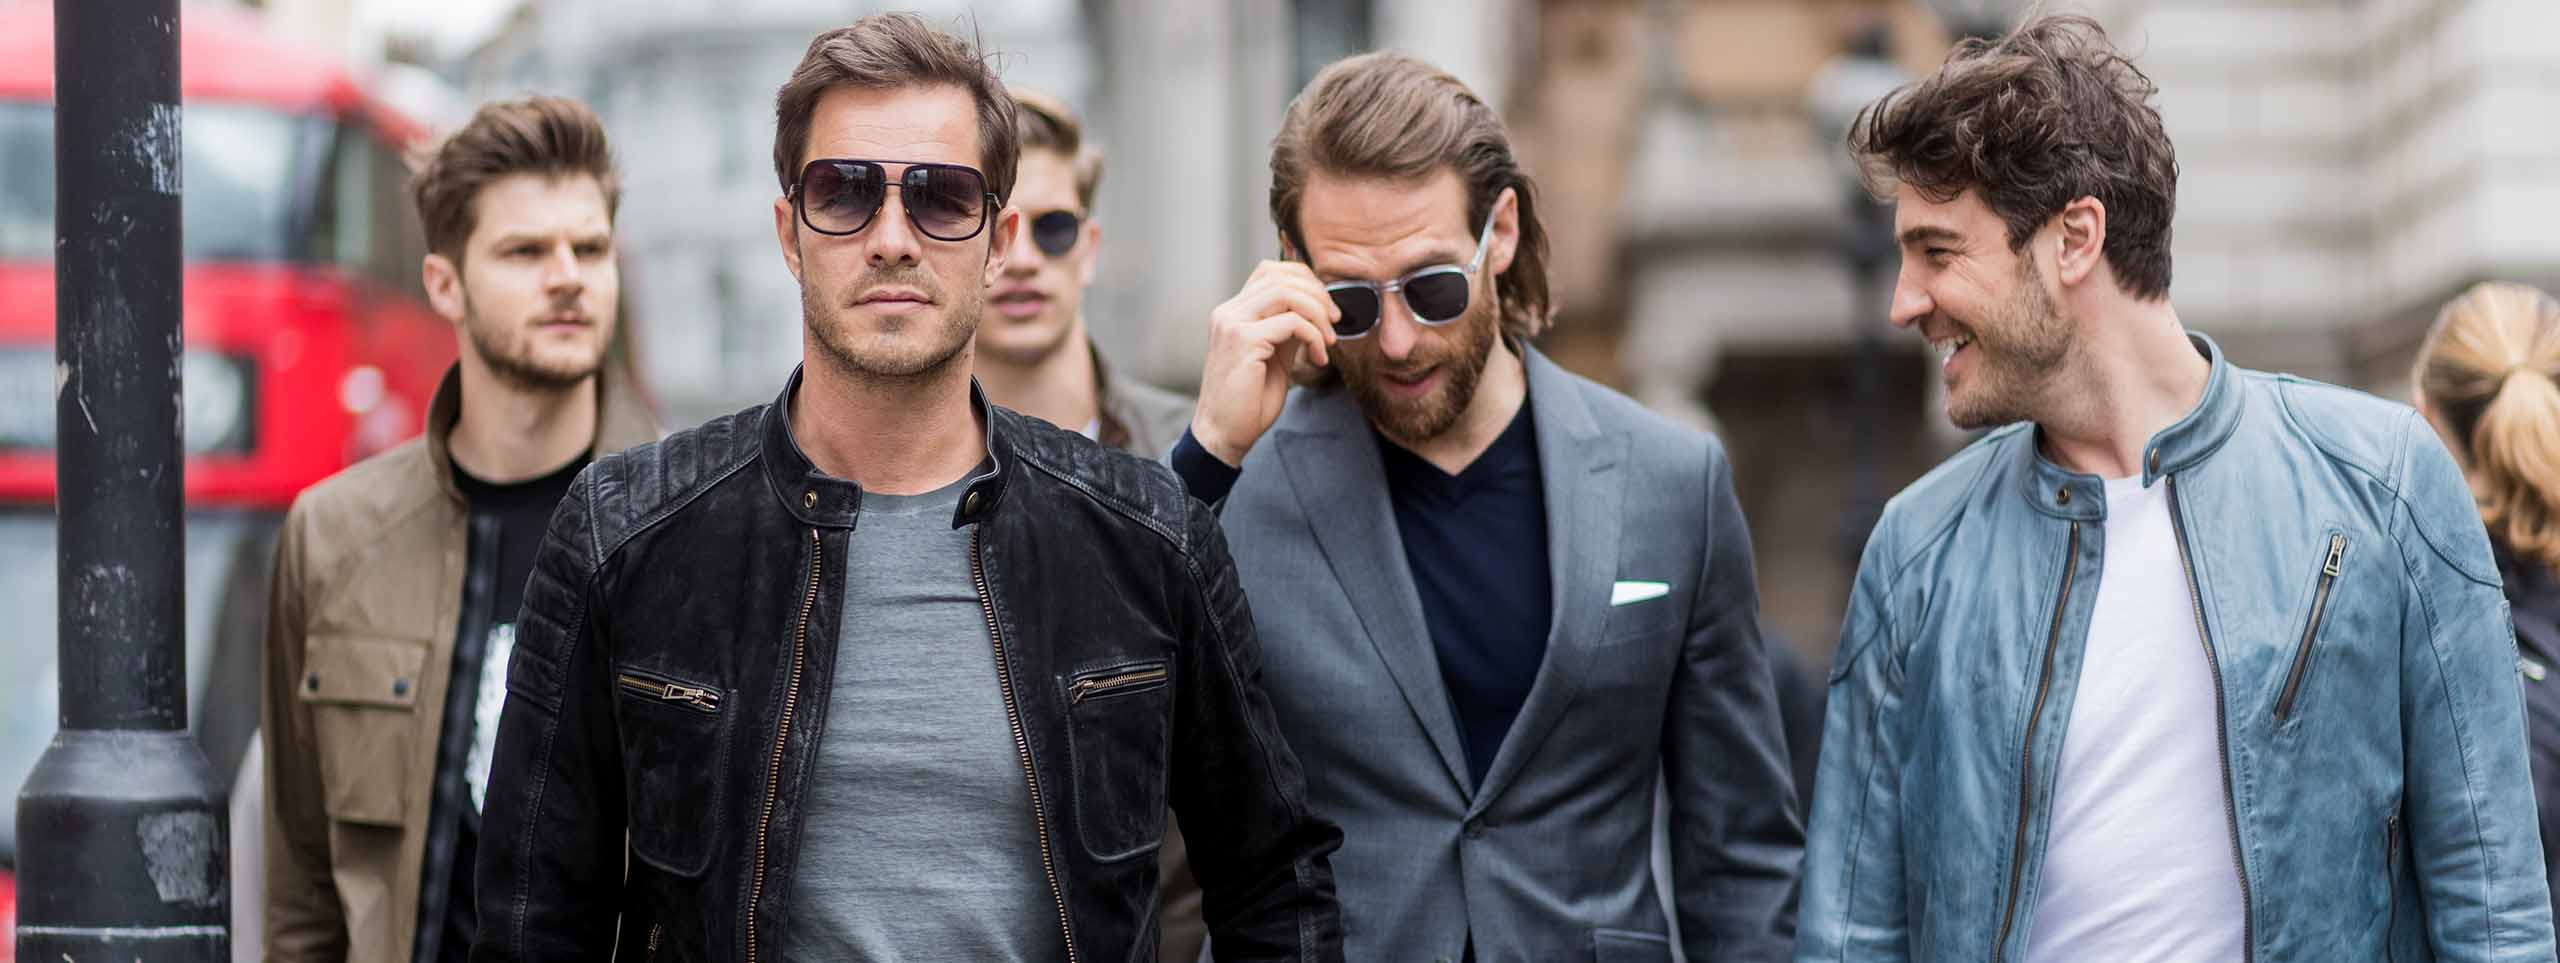 These Mens Hairstyles Are On Trend In 2018